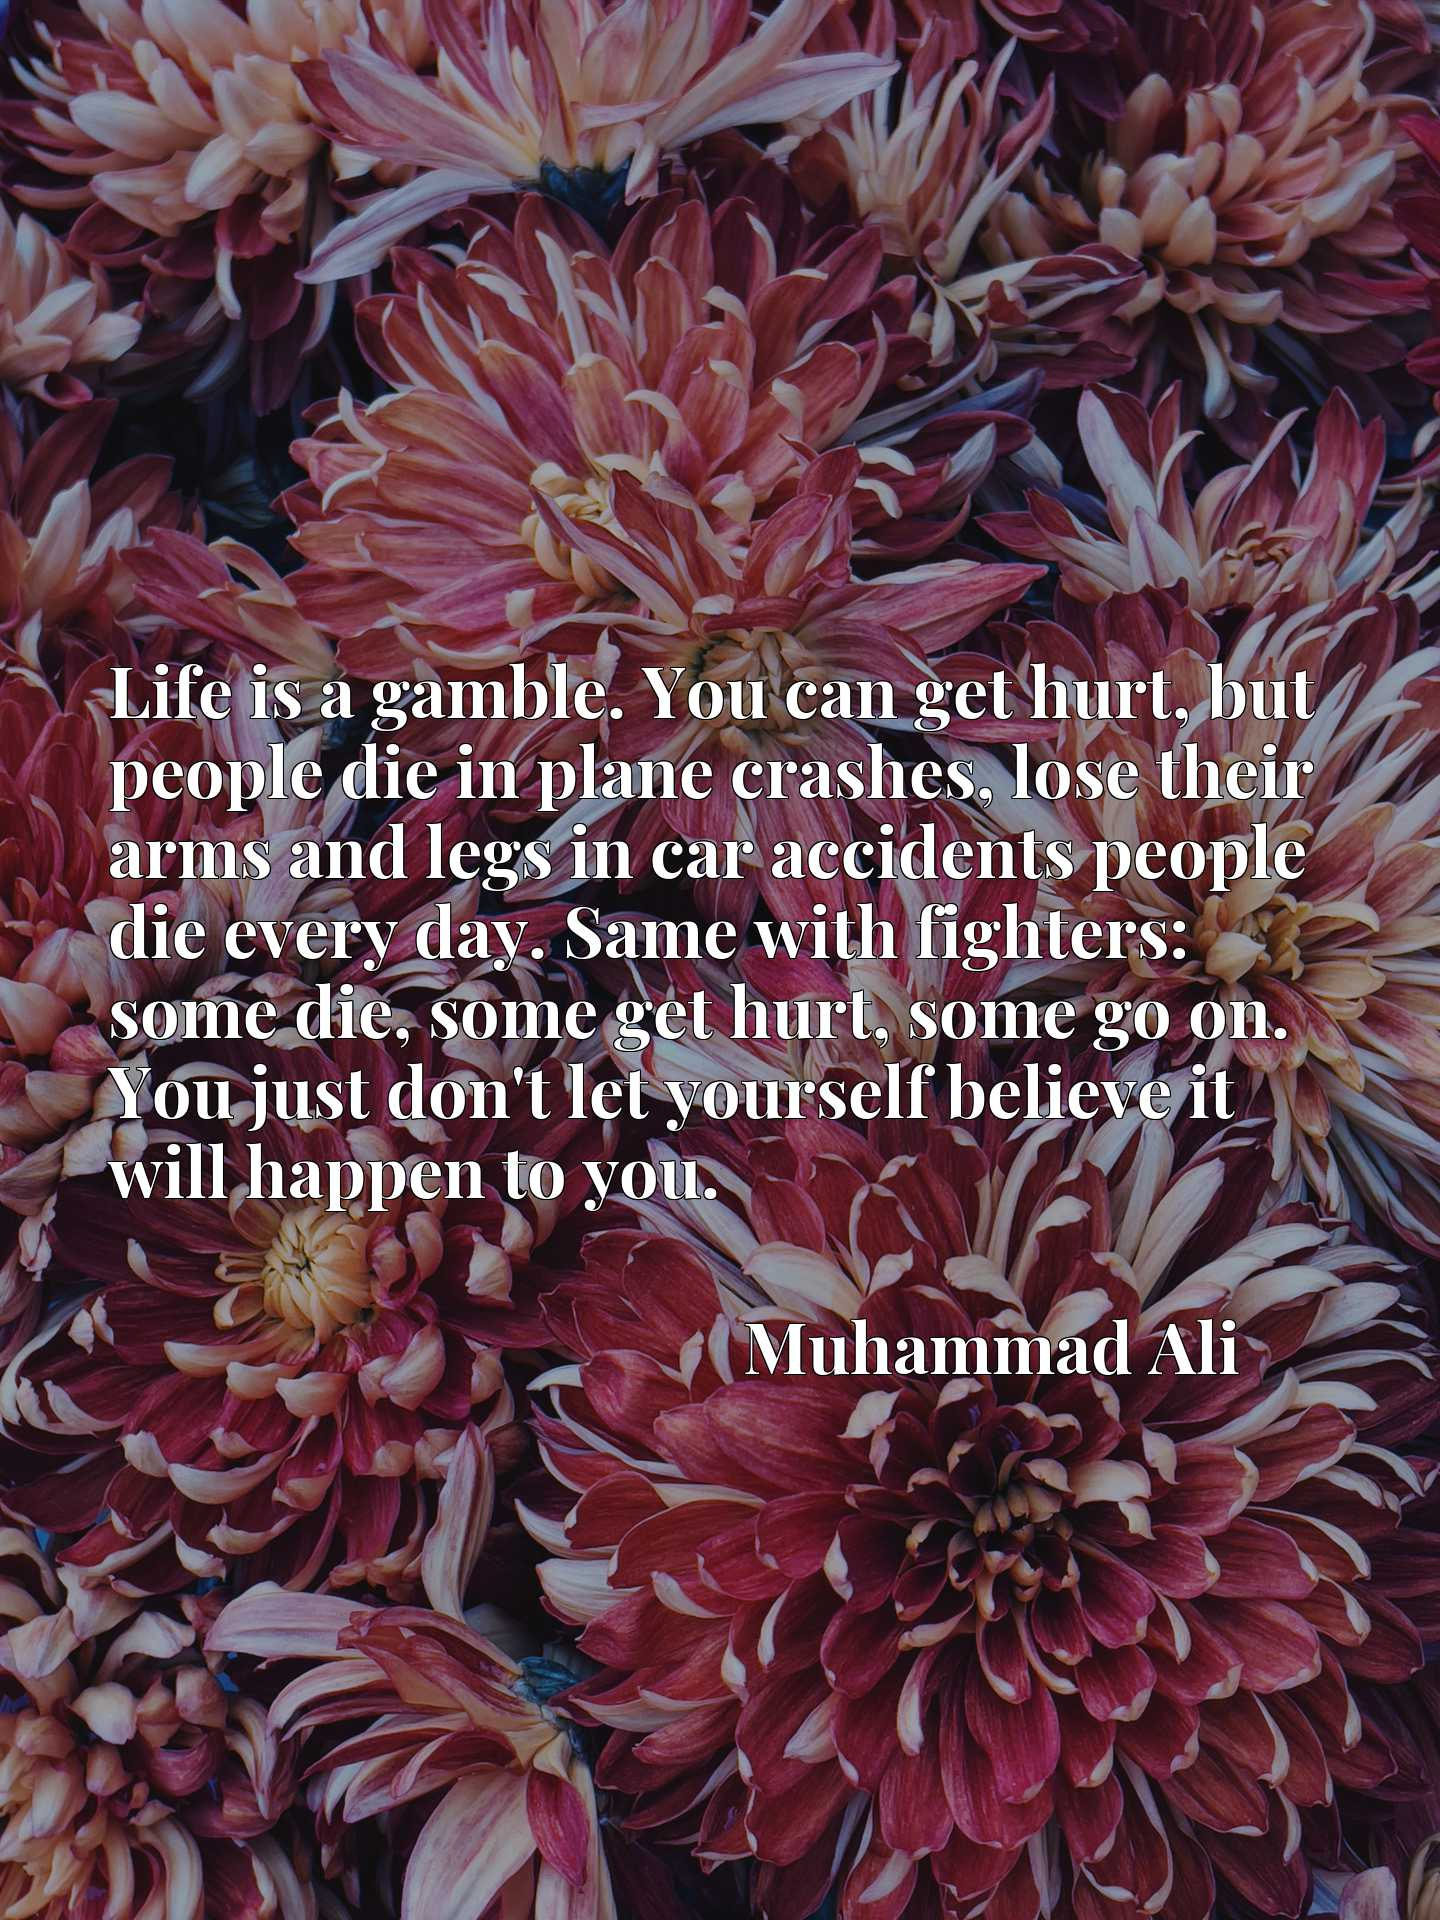 Life is a gamble. You can get hurt, but people die in plane crashes, lose their arms and legs in car accidents people die every day. Same with fighters: some die, some get hurt, some go on. You just don't let yourself believe it will happen to you.